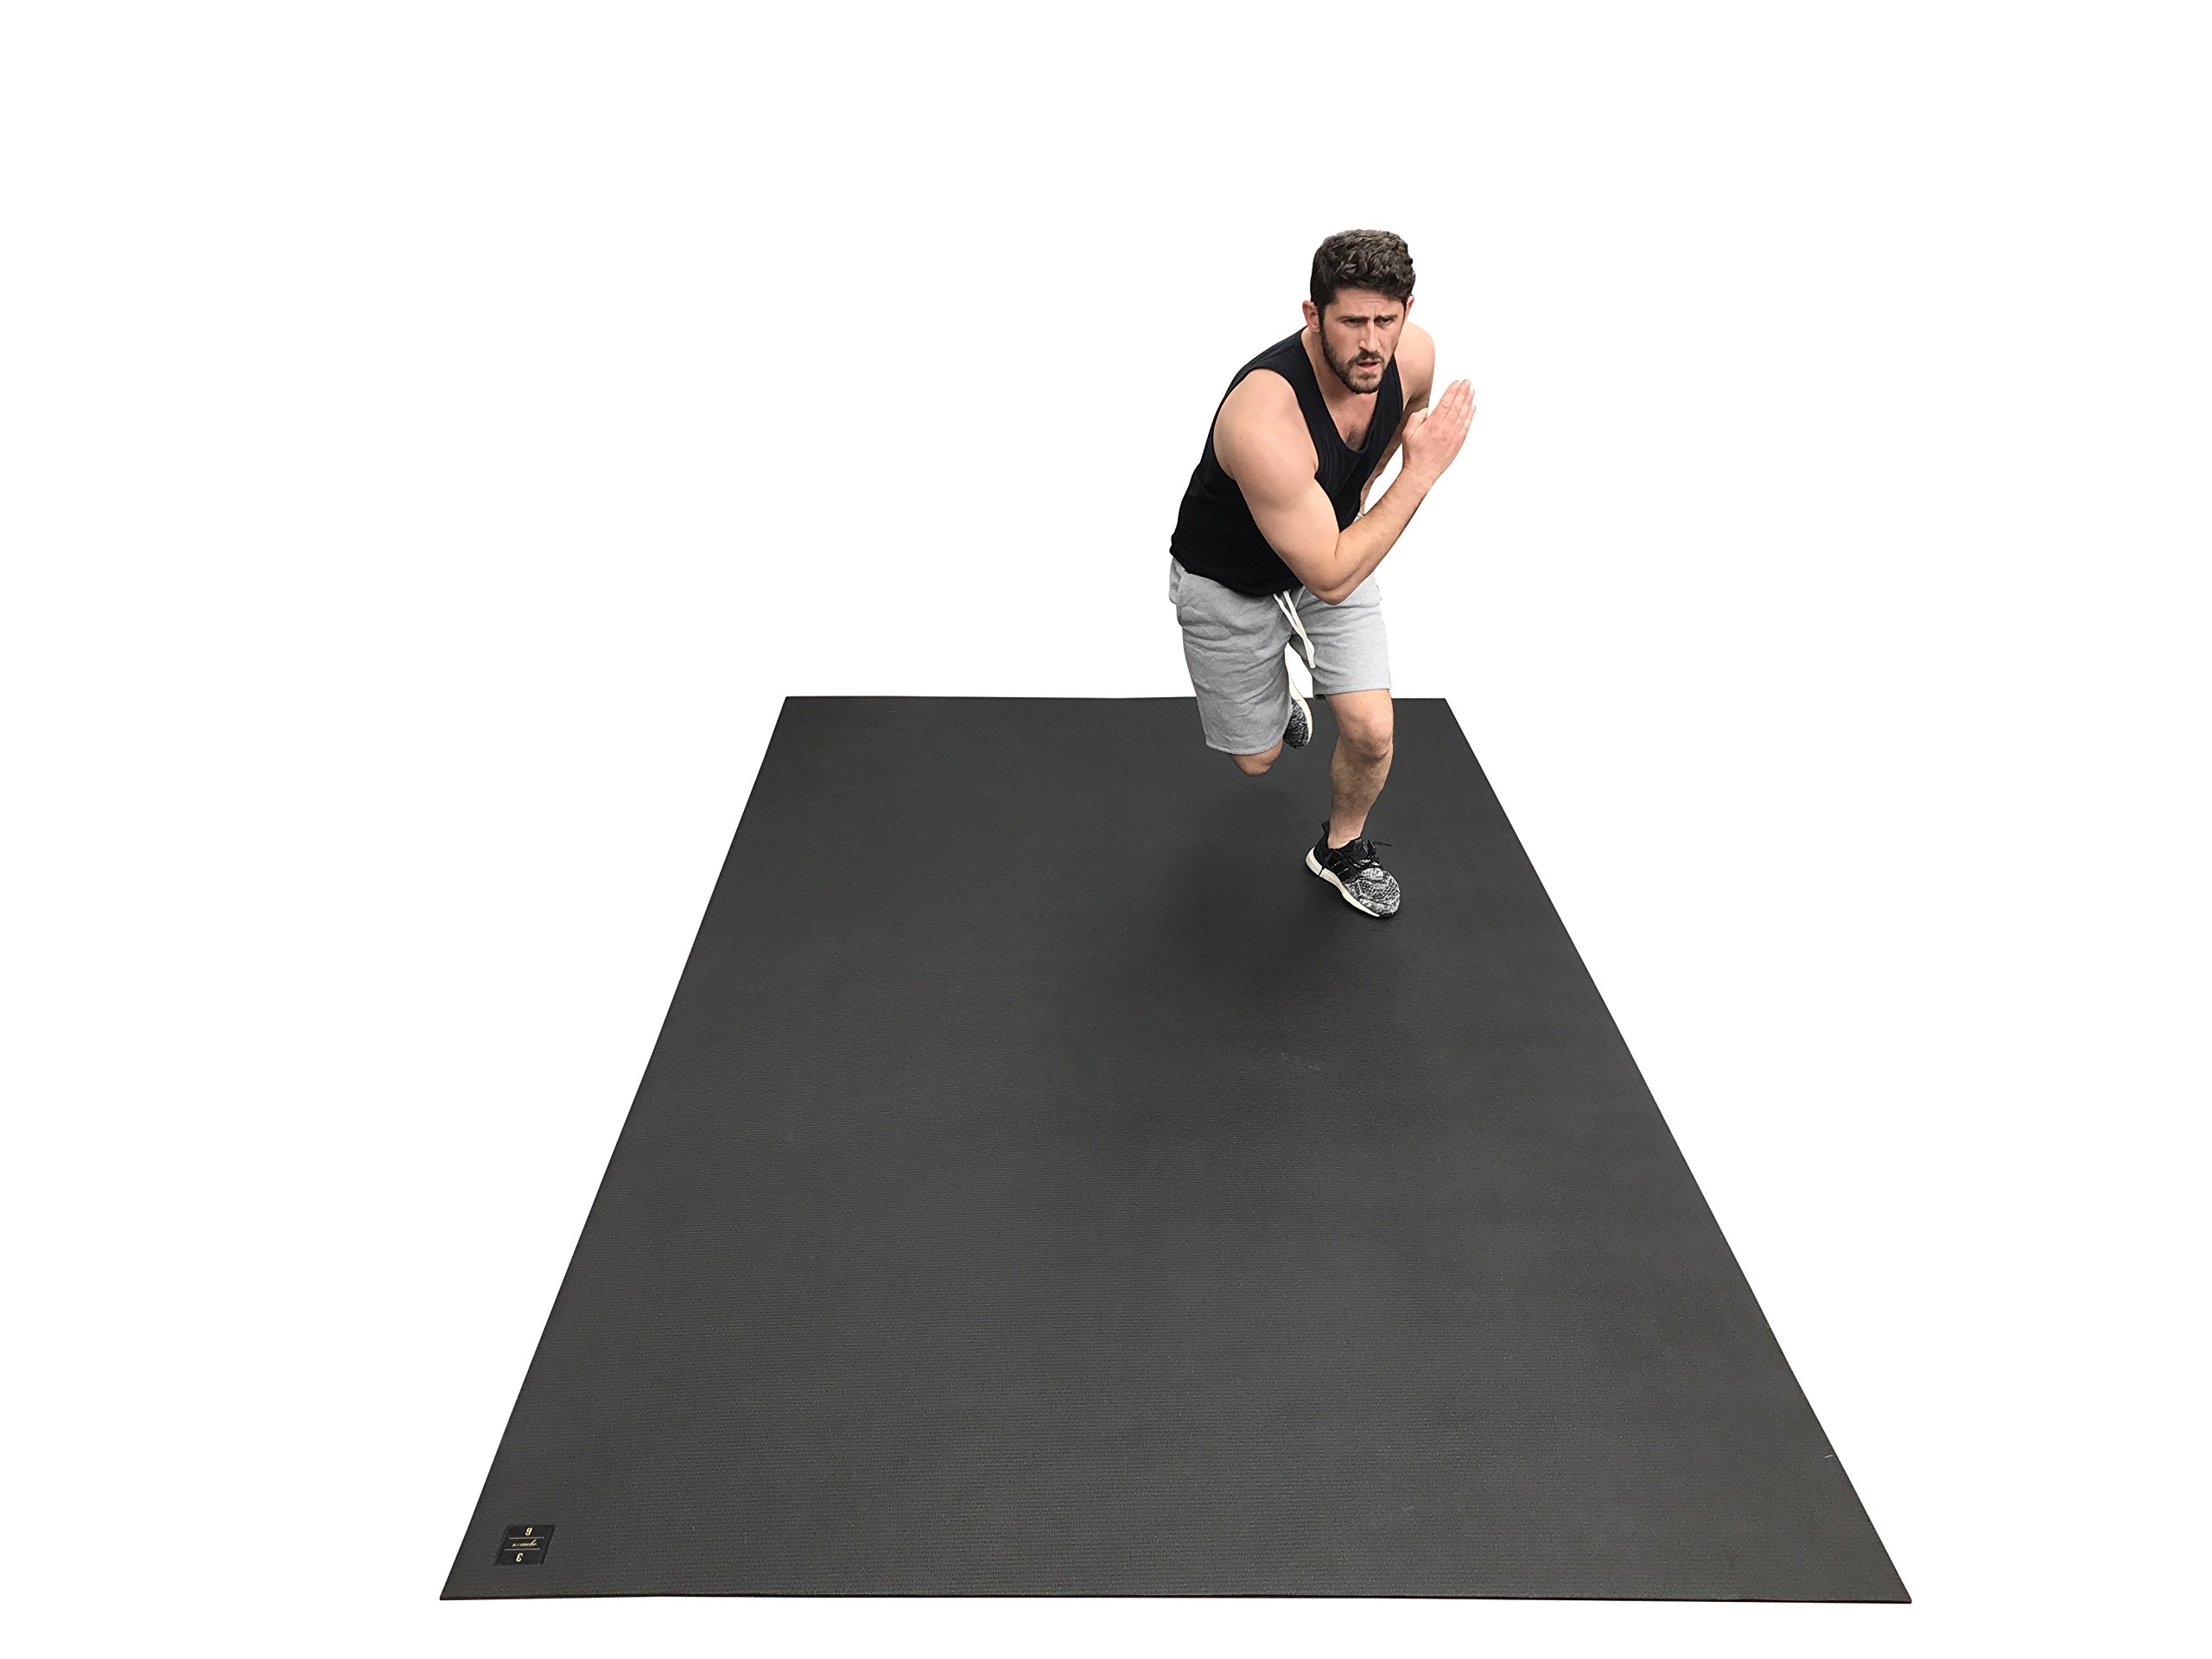 Large Exercise Mat 10 Ft X 6 Ft (120'' x 72'' x 1/4''). Designed For Cardio Workouts WITH Shoes. Perfect For MMA, Cardio And Plyometric Workouts. Ideal For Home Gyms Or Living Room Workouts. Square36 by Square36 (Image #5)